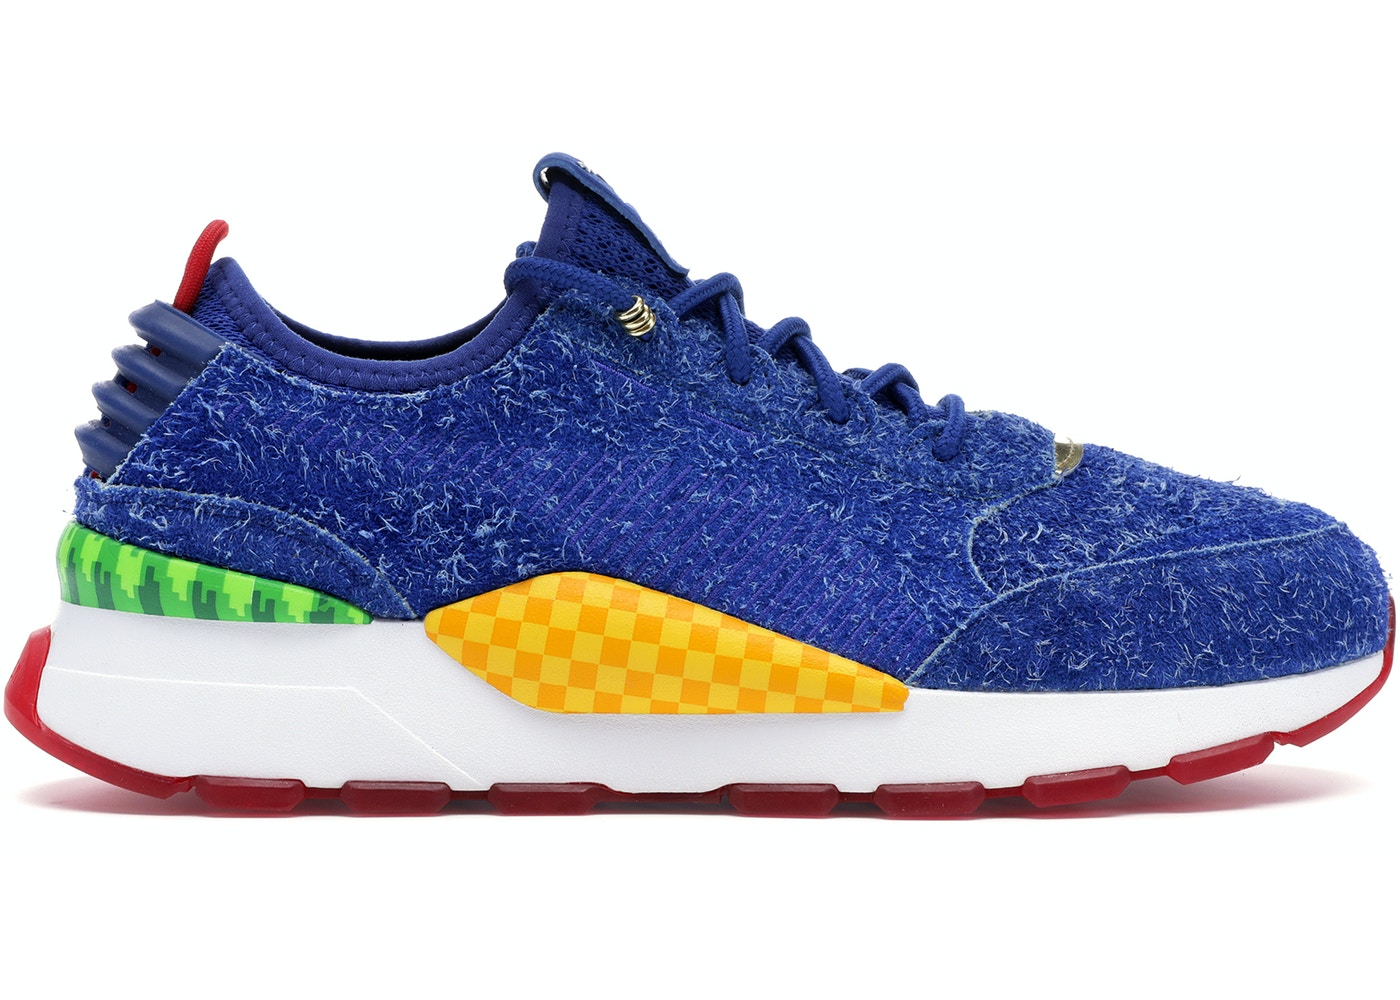 63c984894b9 Puma RS-0 SEGA Sonic the Hedgehog - 368276 01